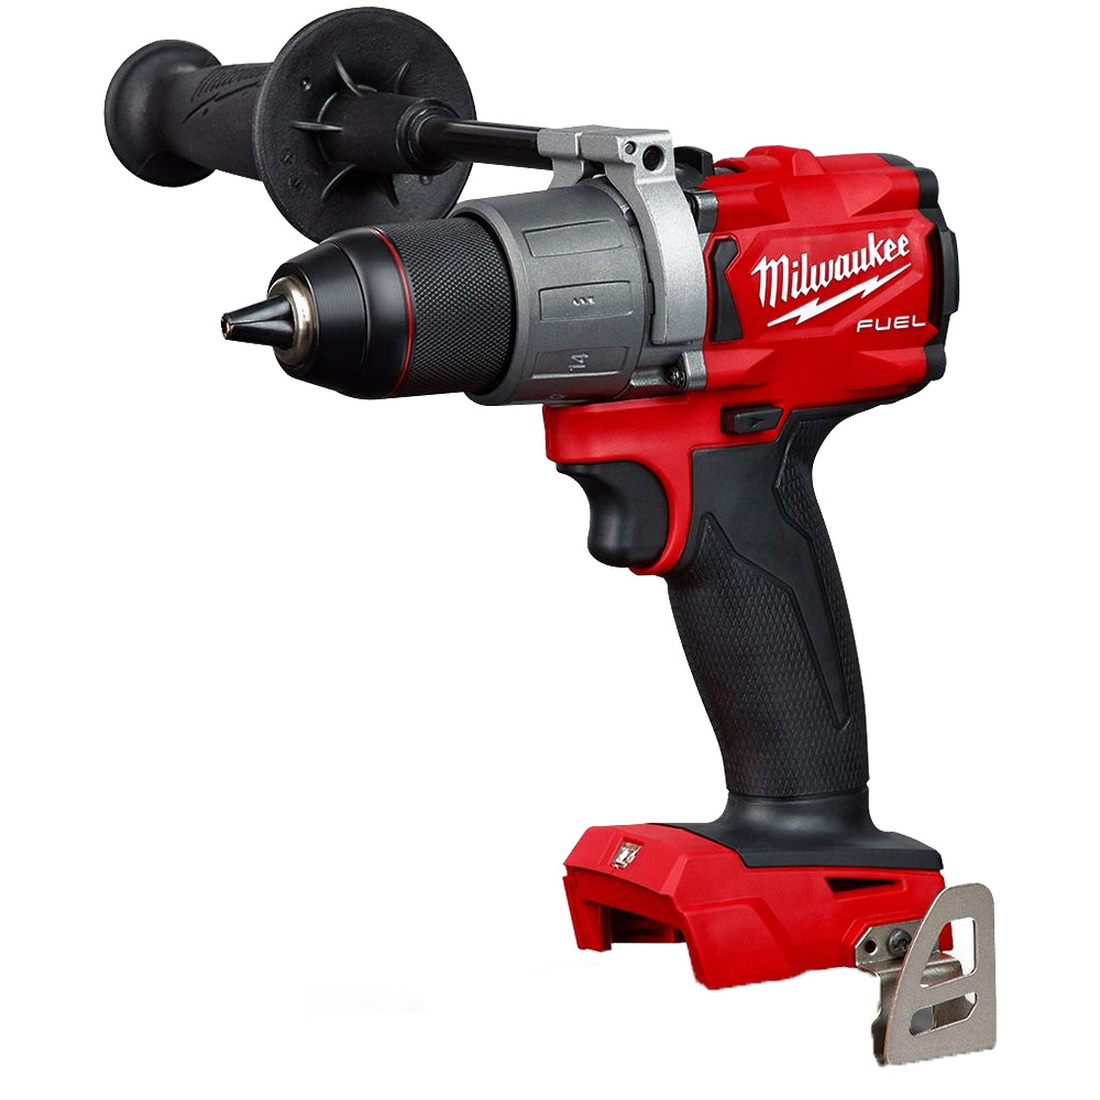 M18 FUEL Cordless Drill and Driver